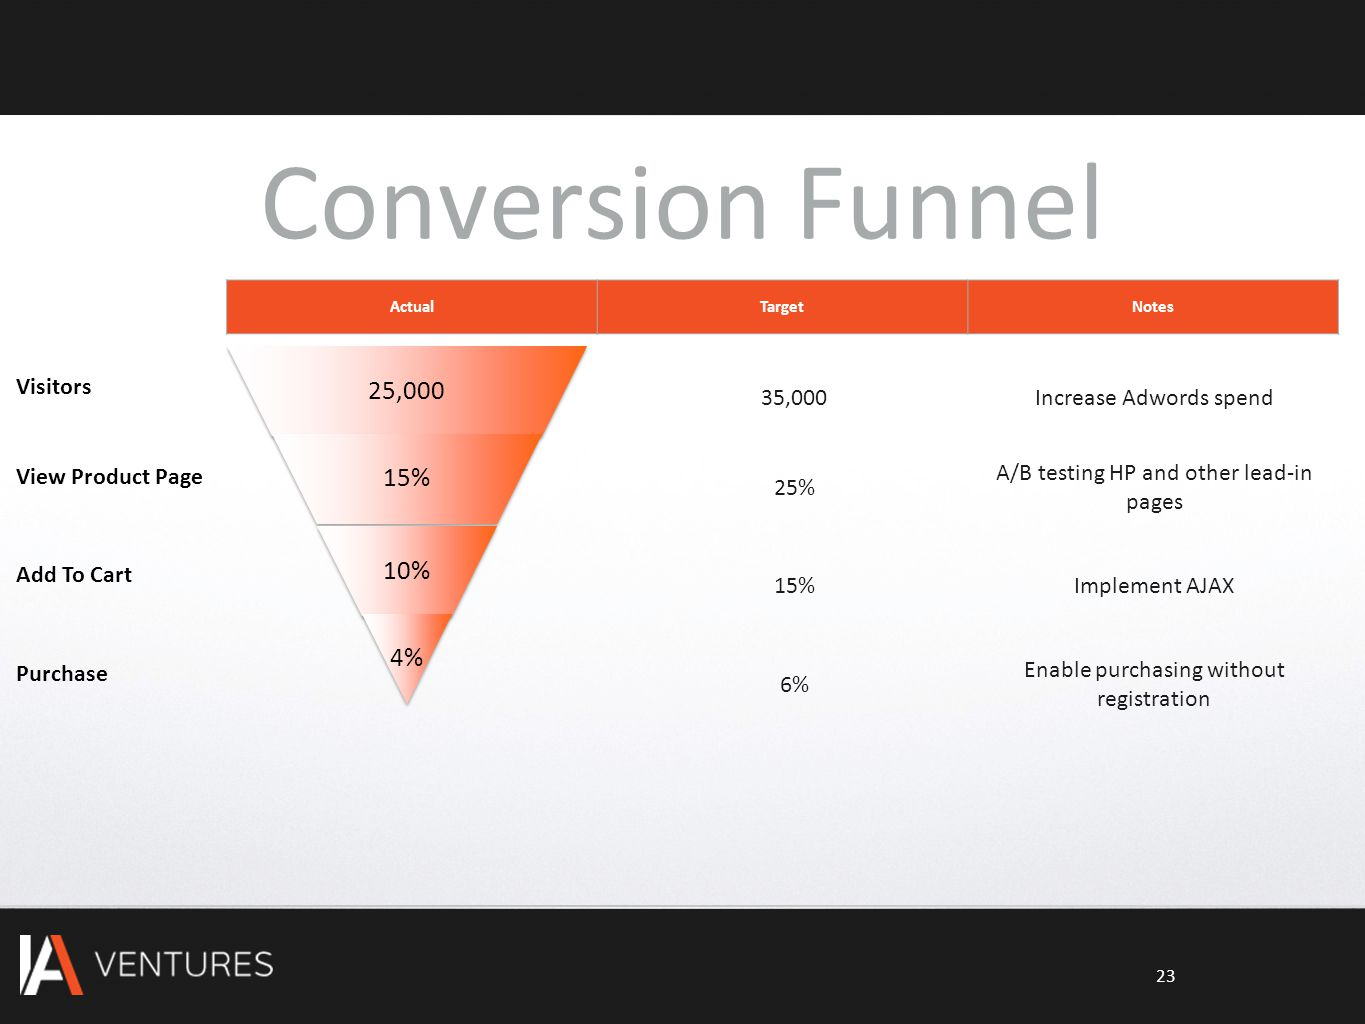 Conversion Funnel 25,000 15% 10% 4% ActualTargetNotes Visitors View Product Page Add To Cart Purchase 35,000Increase Adwords spend 25% A/B testing HP and other lead-in pages 15%Implement AJAX 6% Enable purchasing without registration 23